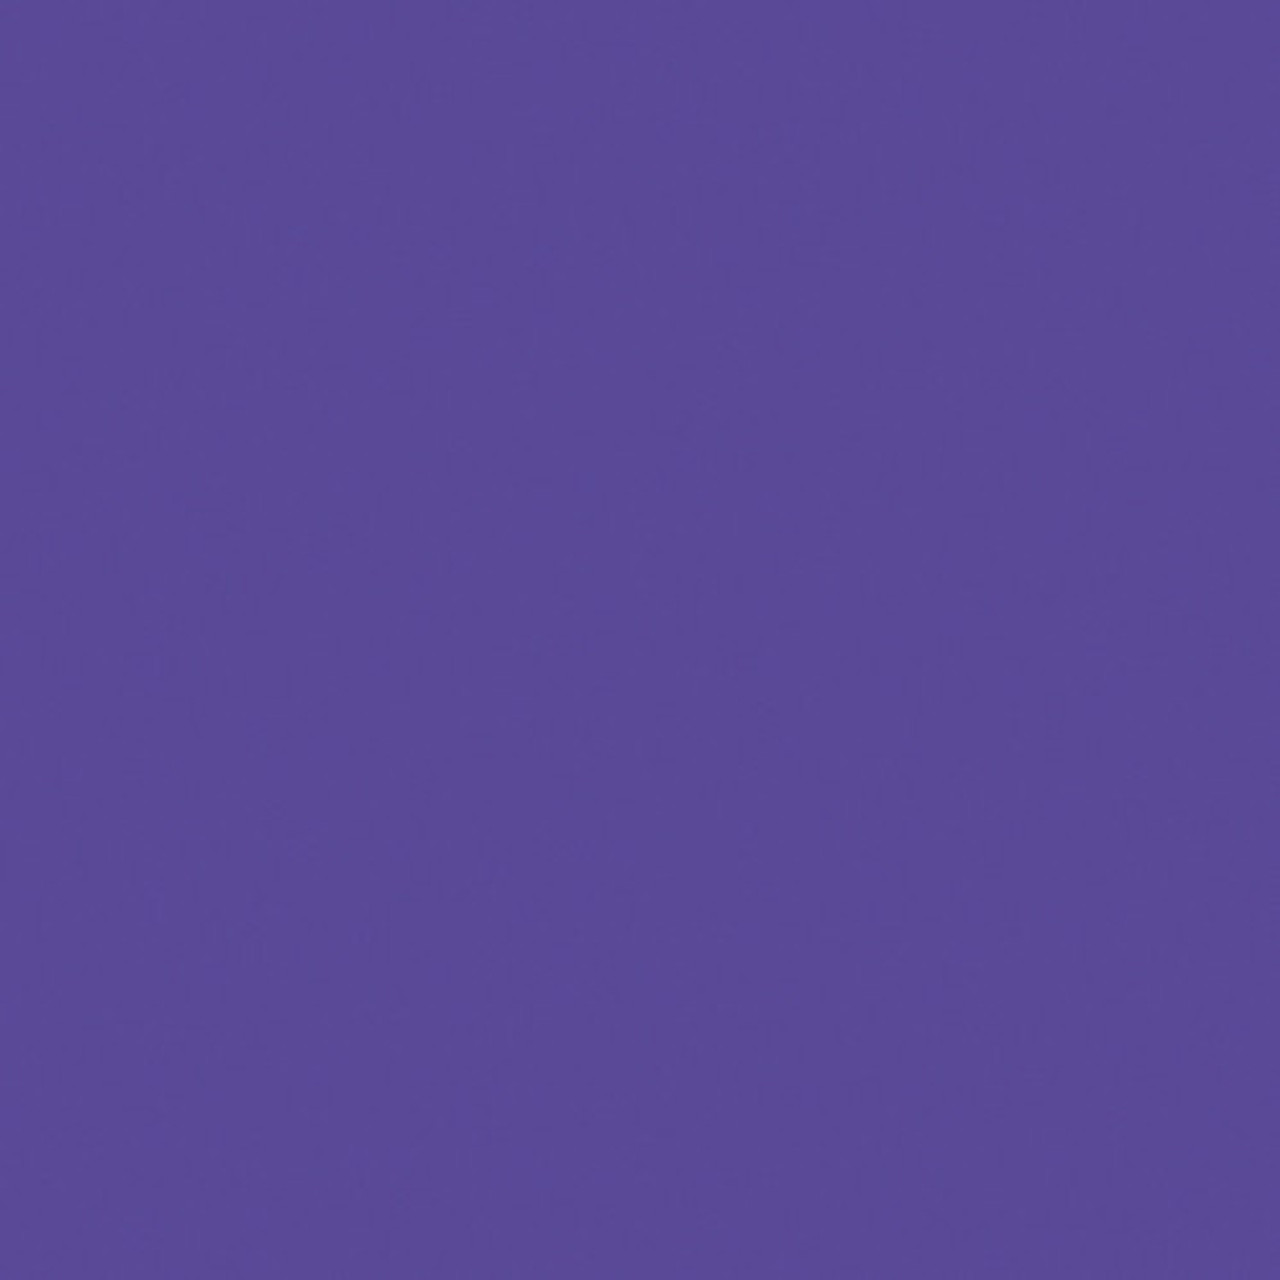 #0356 Rosco Gels Roscolux Middle Lavender, 20x24